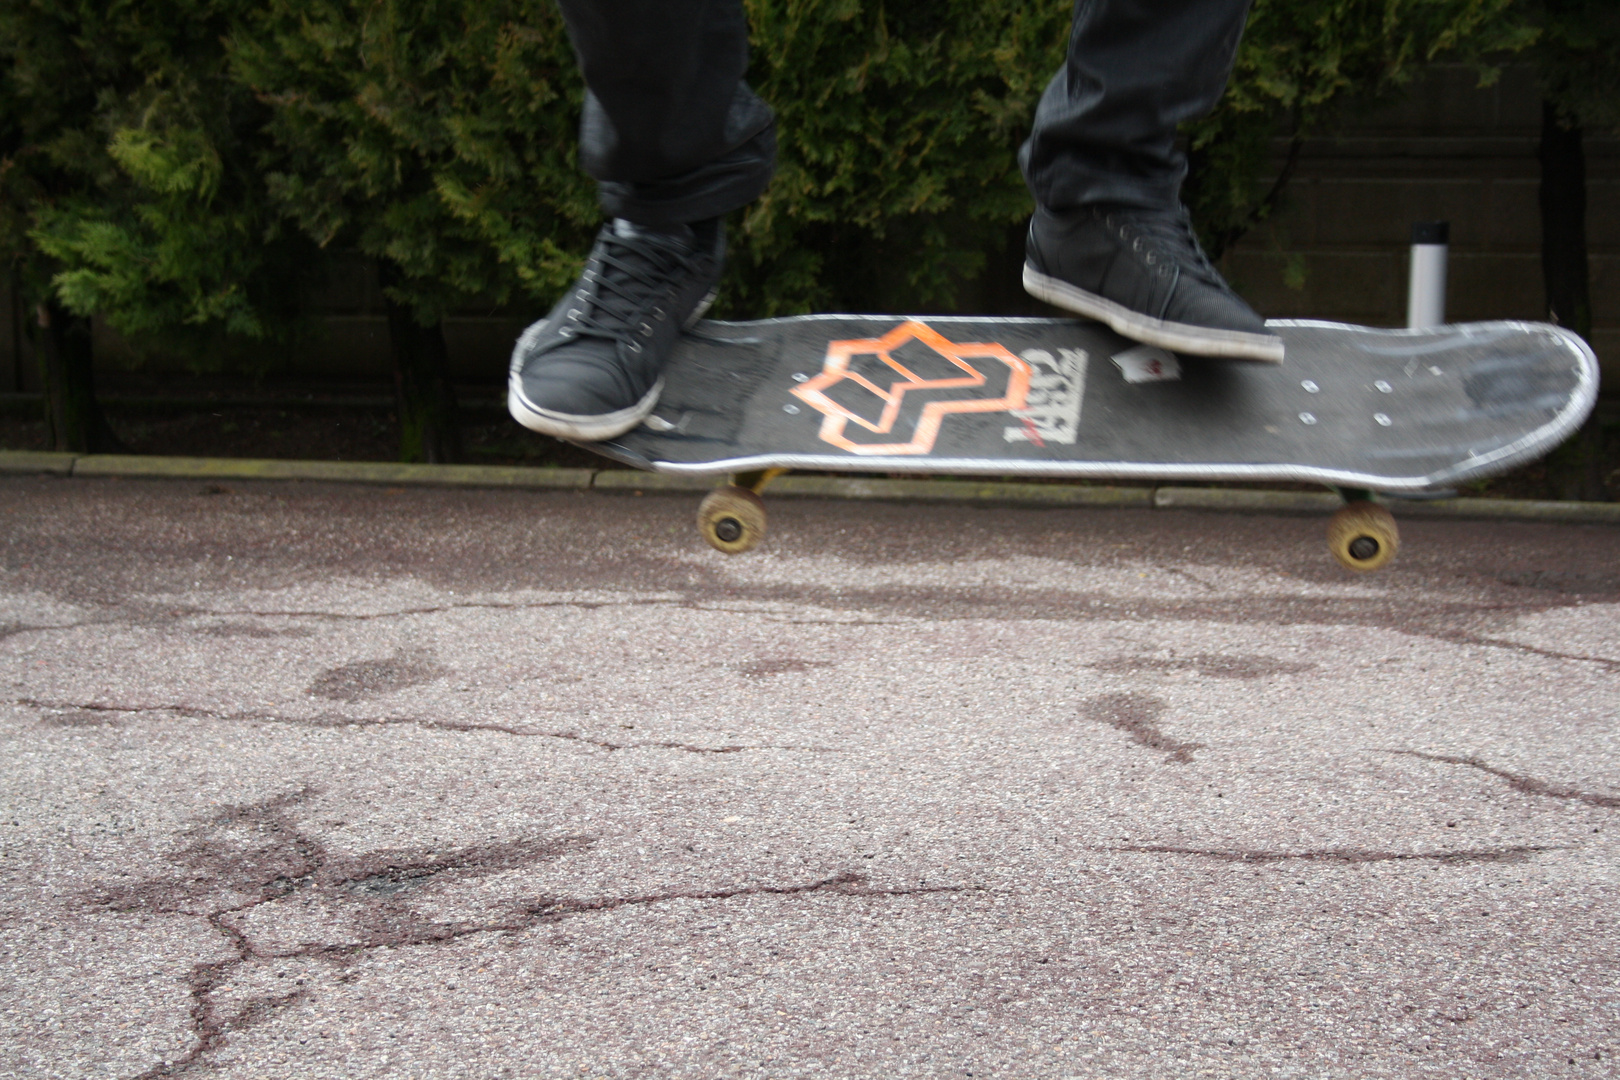 This is skate!